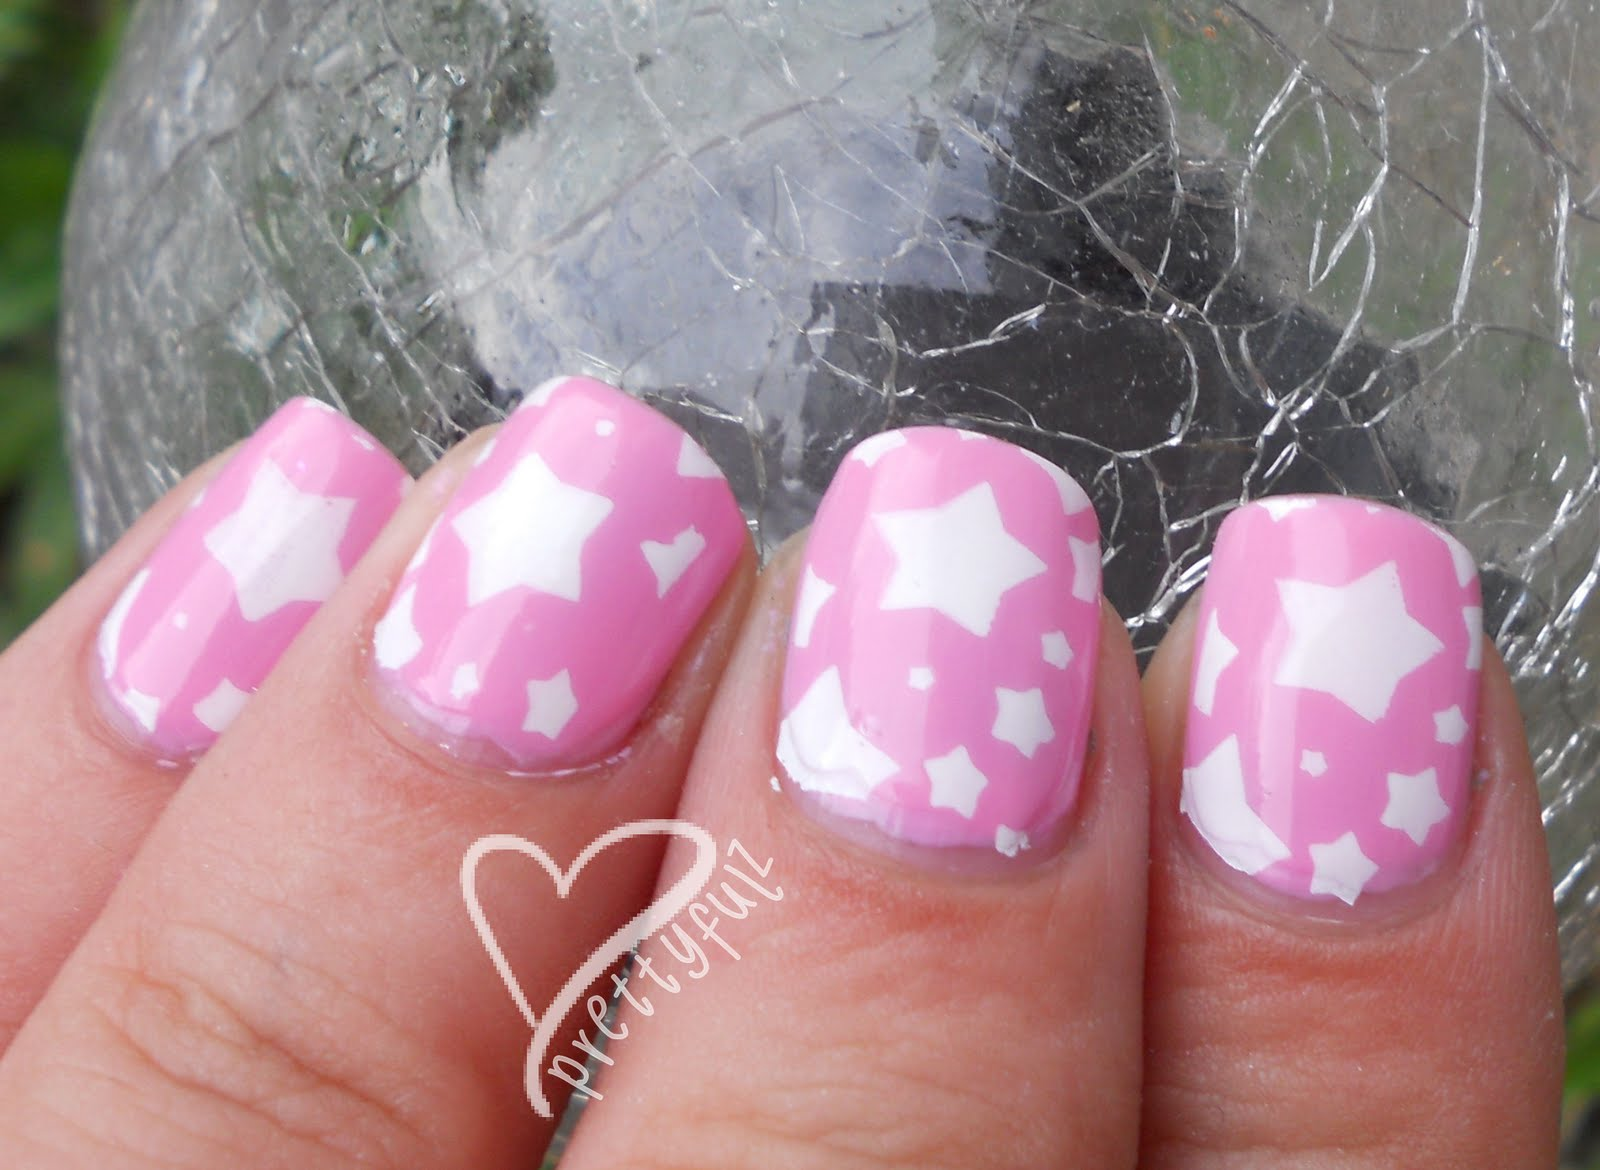 Nail Designs On White Nails P8080237 Cutepinkstarnailartdesign2